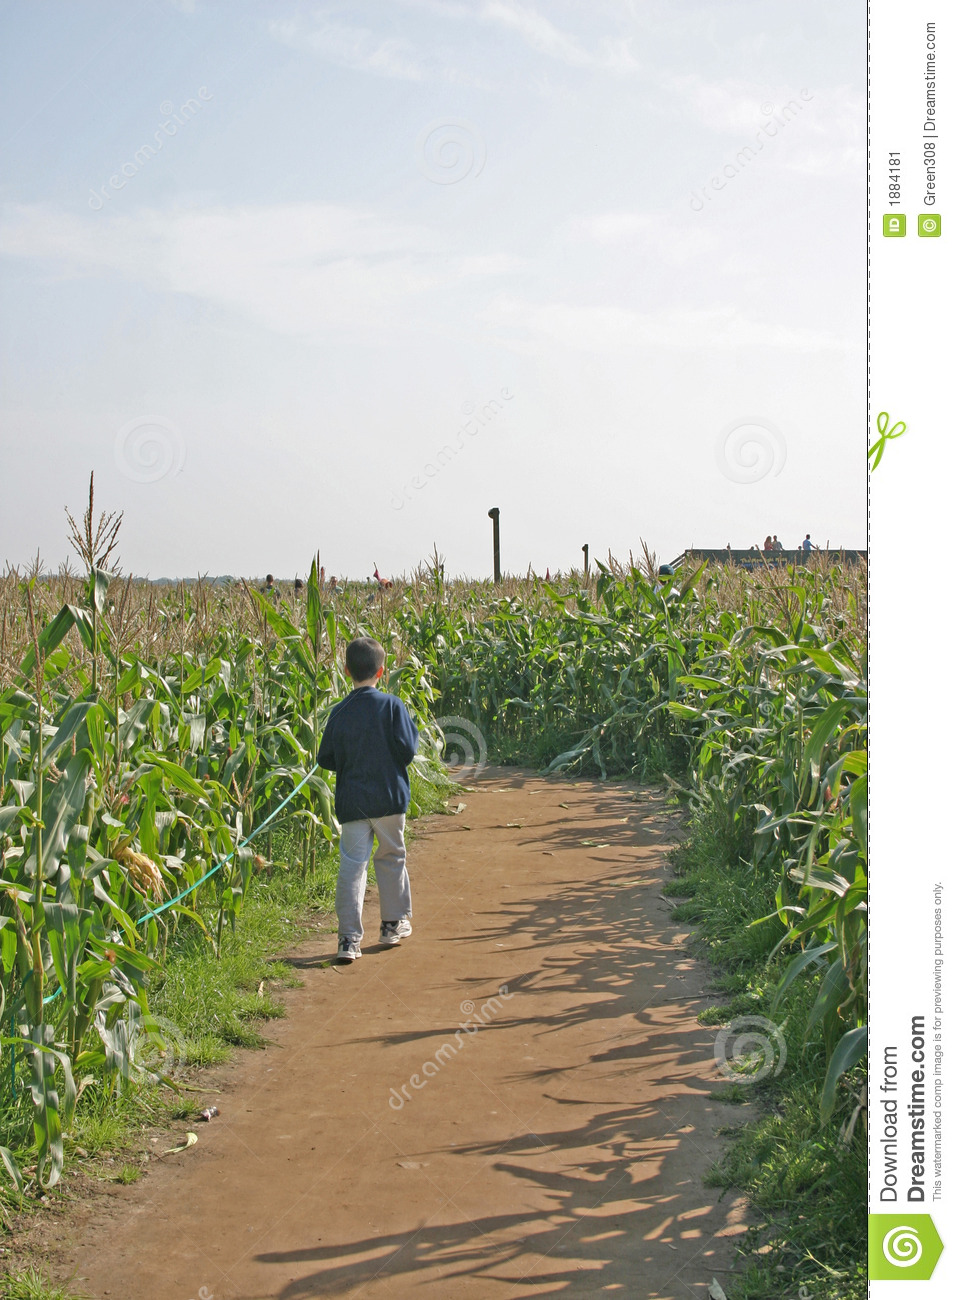 Boy Lost in Maize Maze in Cheshire Corn Field